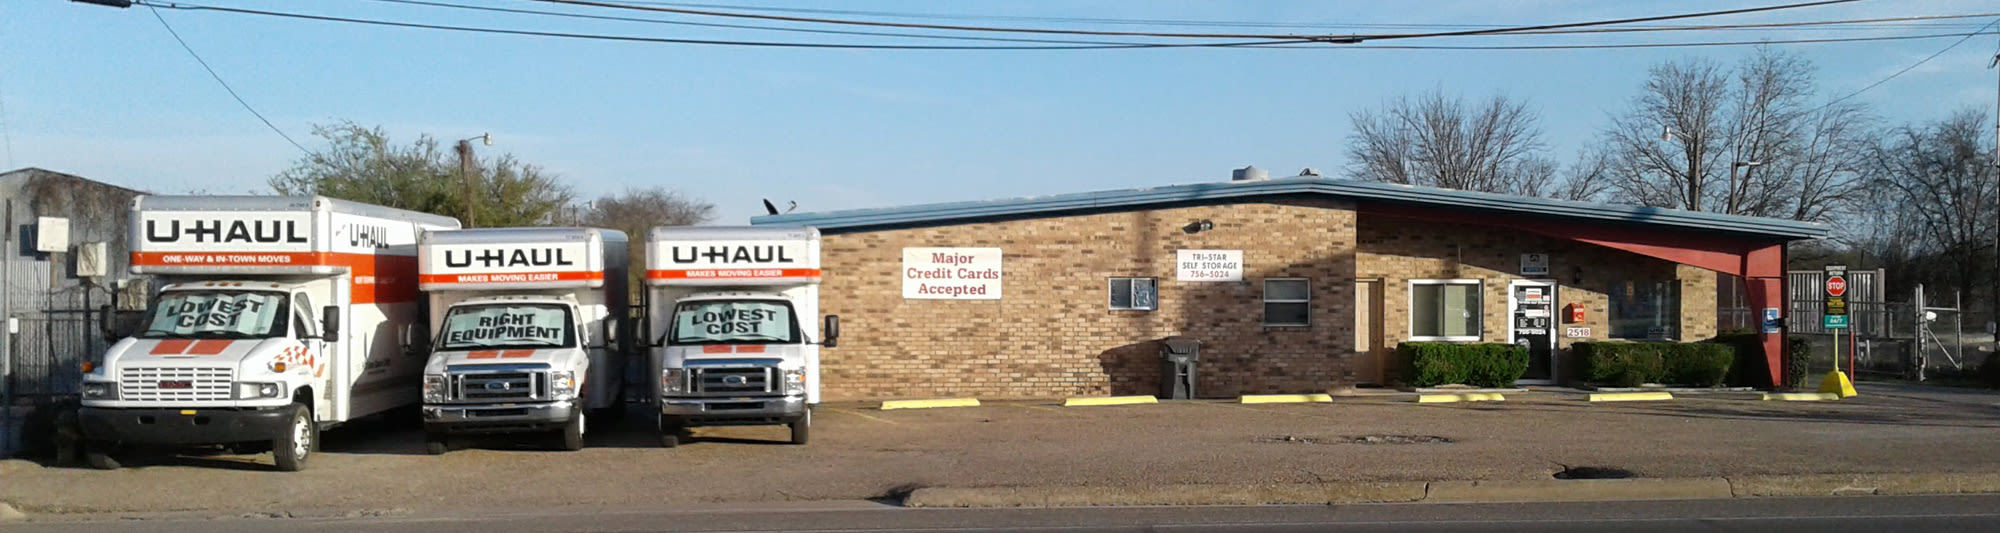 Self storage at Tri Star Self Storage - La Salle in Waco, Texas